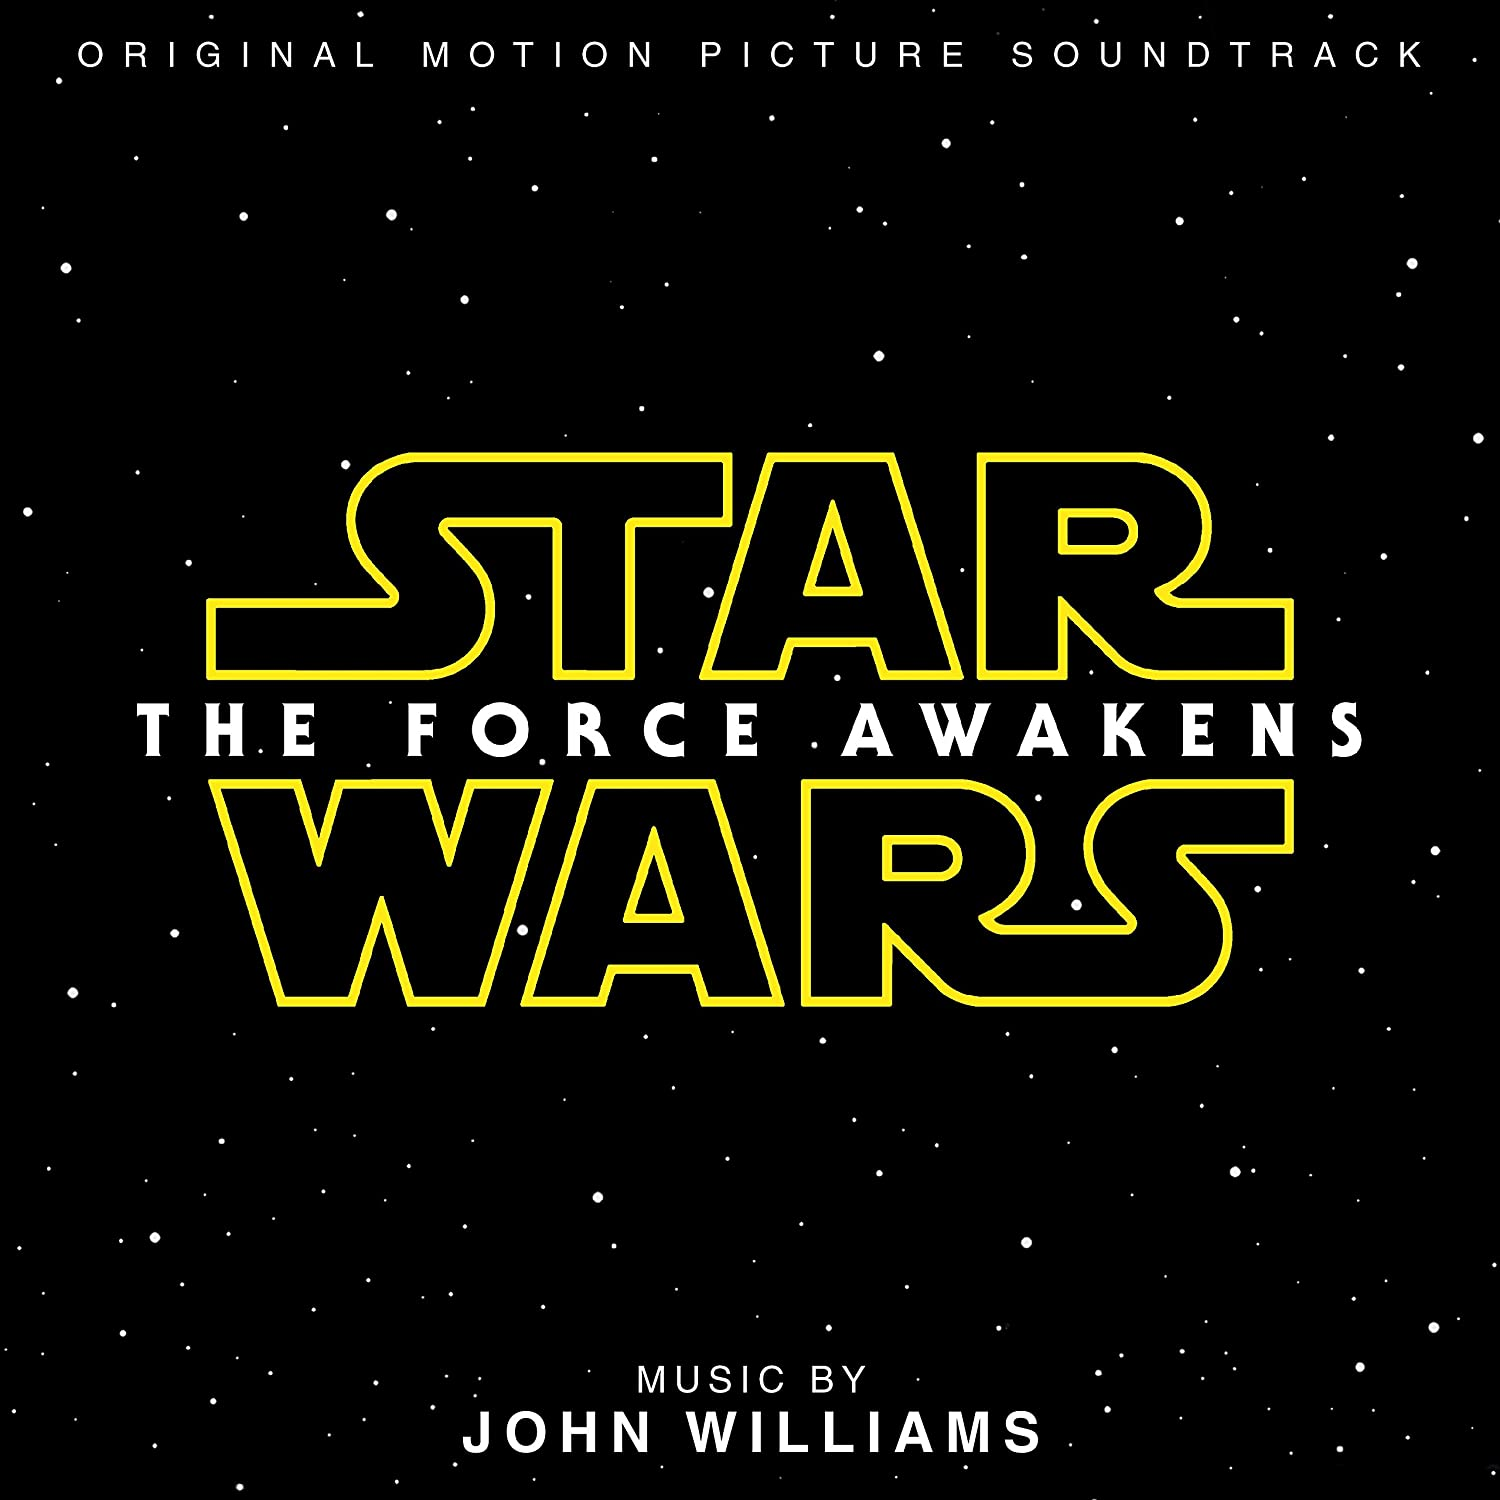 Star Wars: The Force Awakens Original Motion Picture Soundtrack (Record)